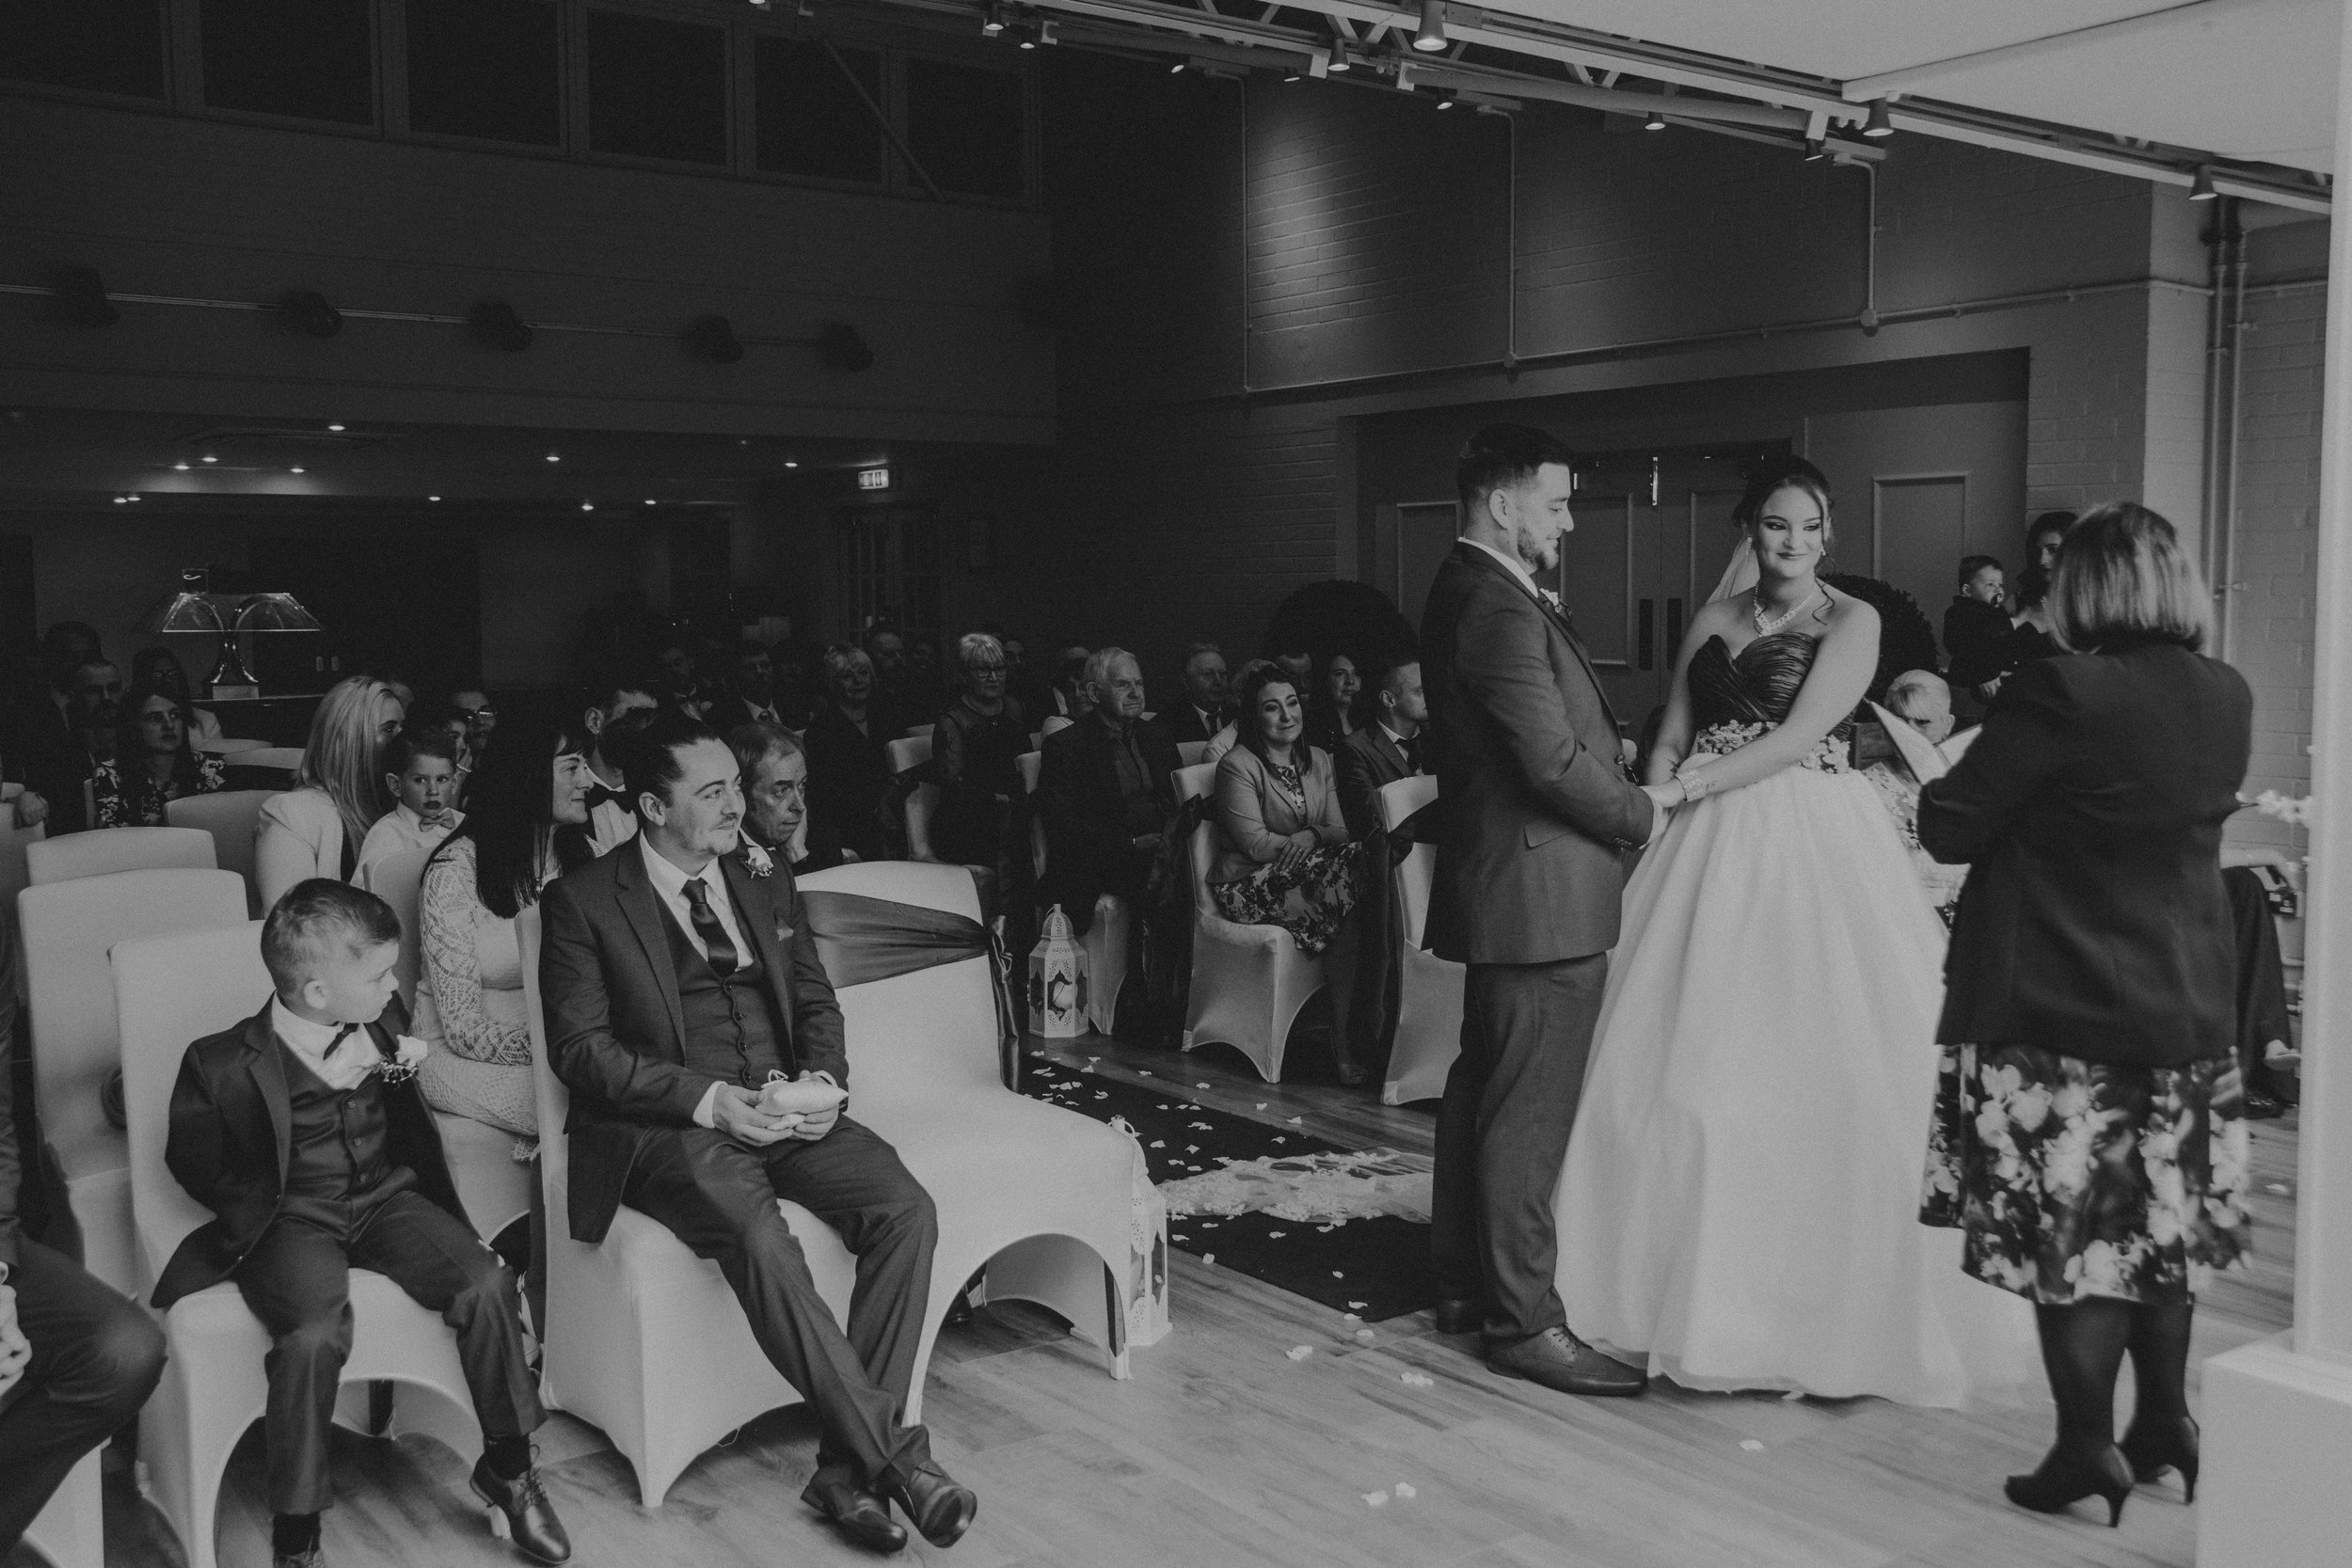 Cheshire wedding photographer knutford wedding photographer wedding photographer northwest wedding photographer edinburgh wedding photographer award winning wedding photographer (1 of 1).jpg